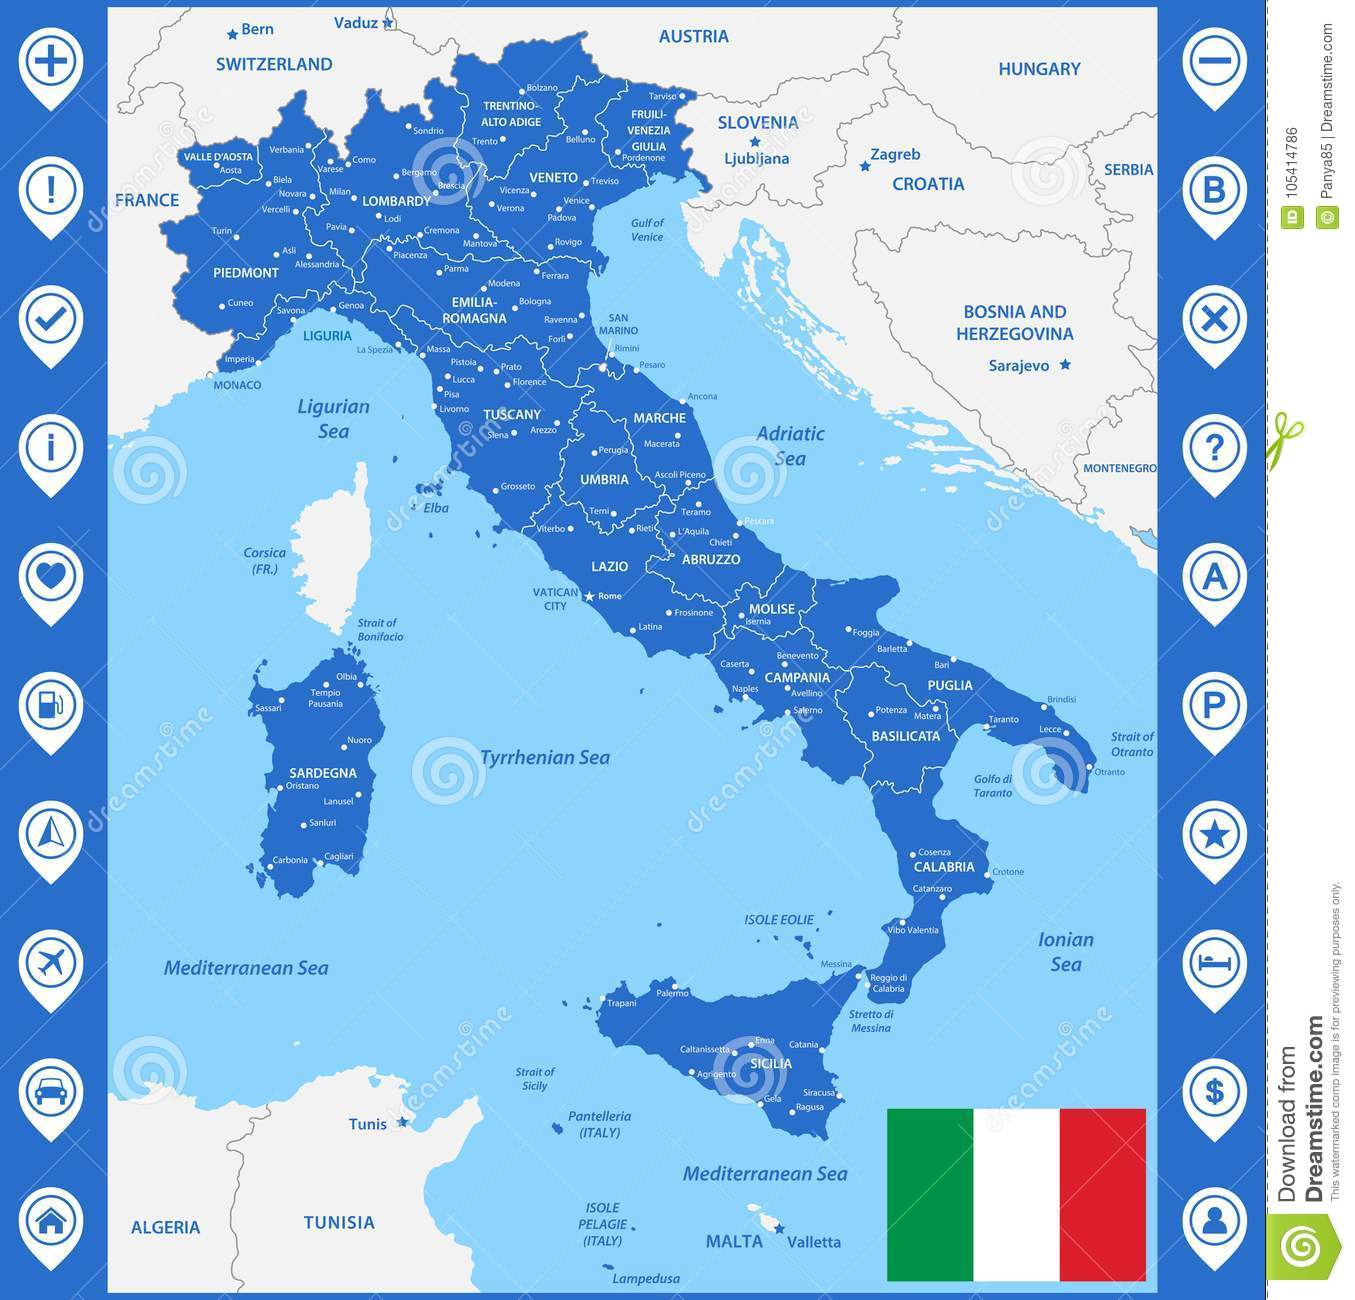 Map Of Italy Regions And Cities.The Detailed Map Of The Italy With Regions Or States And Cities